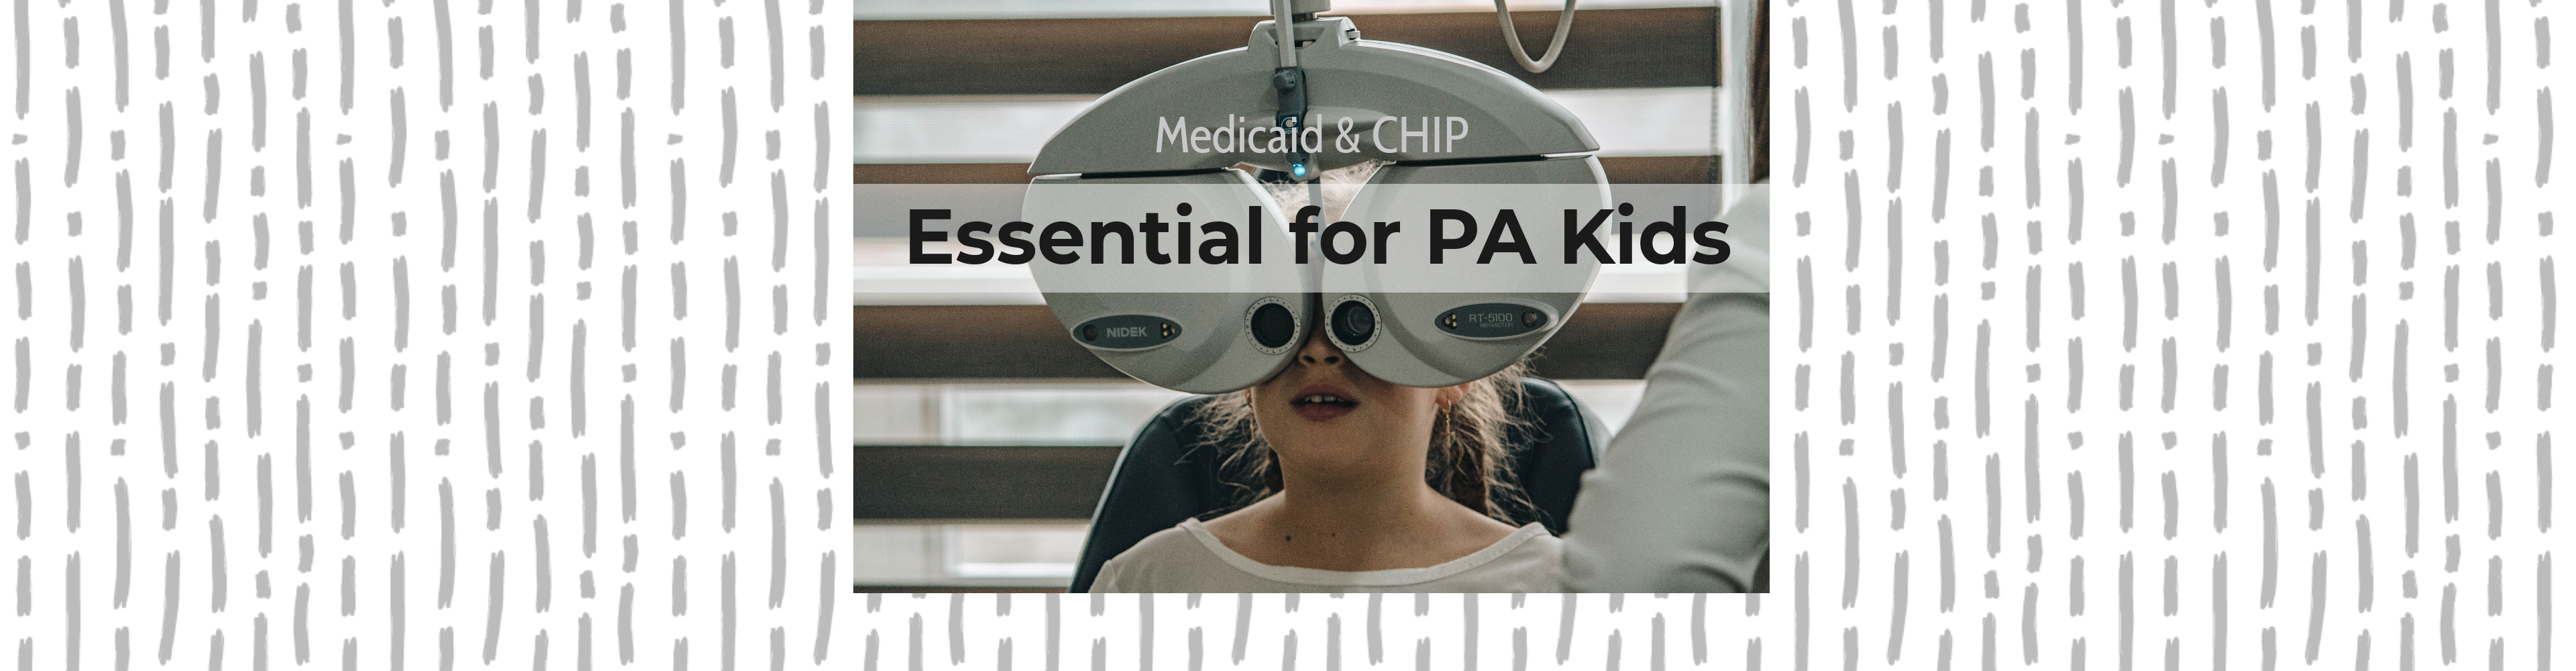 Medicaid and CHIP Fact sheet with enrollment by Congressional District